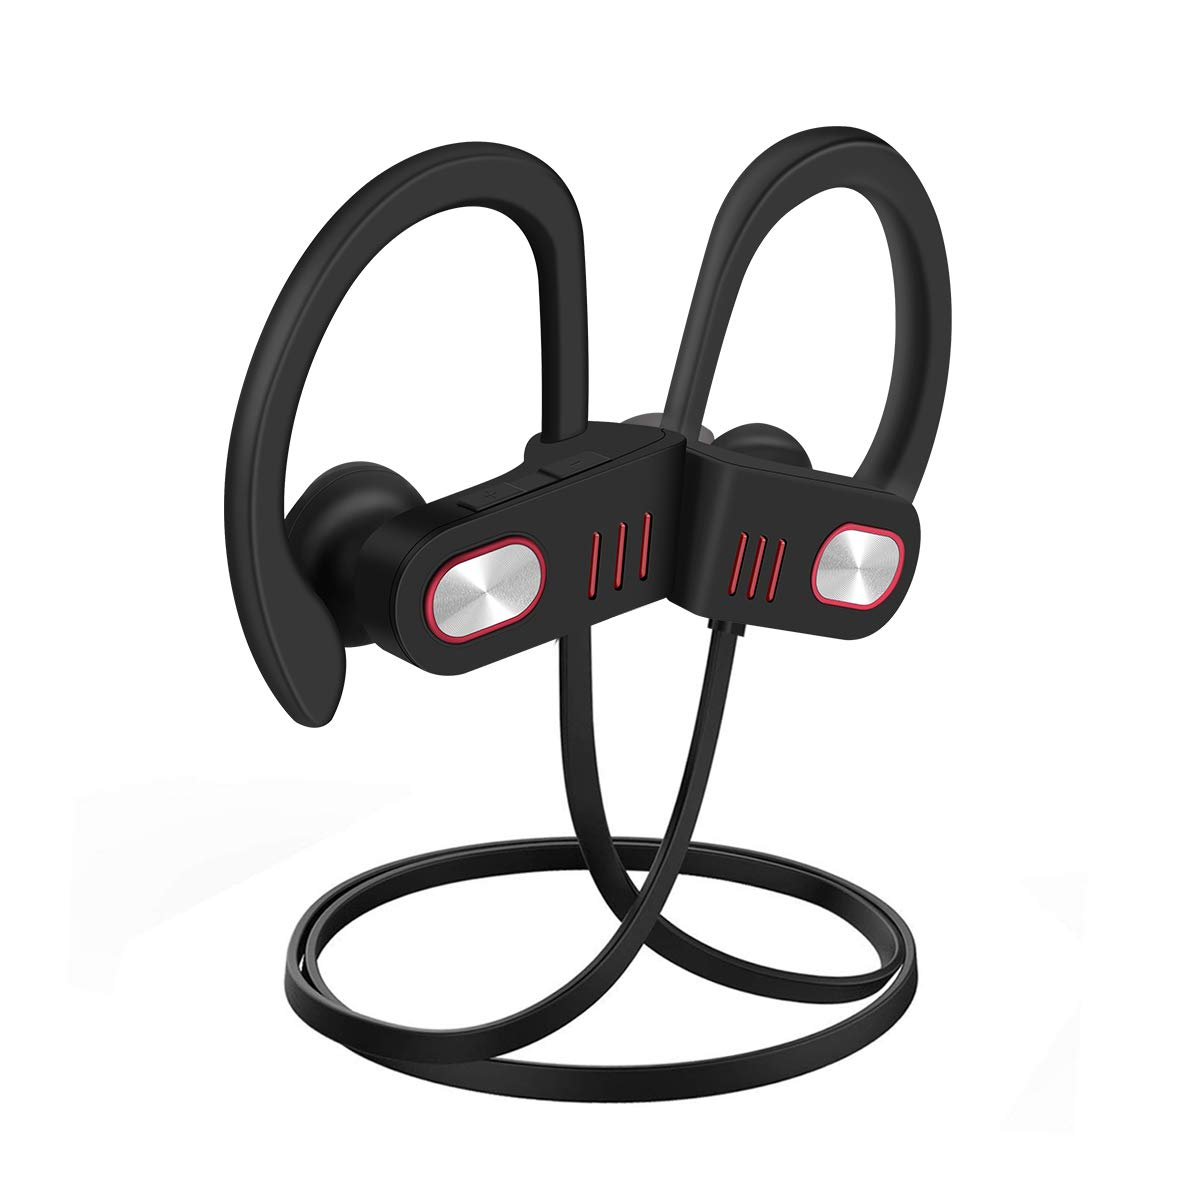 Bluetooth Headphones Wireless in-Ear Headphone Noise Cancelling Sports Earphones Handfree HD Stereo Headsets Lightweight Earbuds Sweatproof Ergonomic for Gym Workout 18g, 8hrs Play